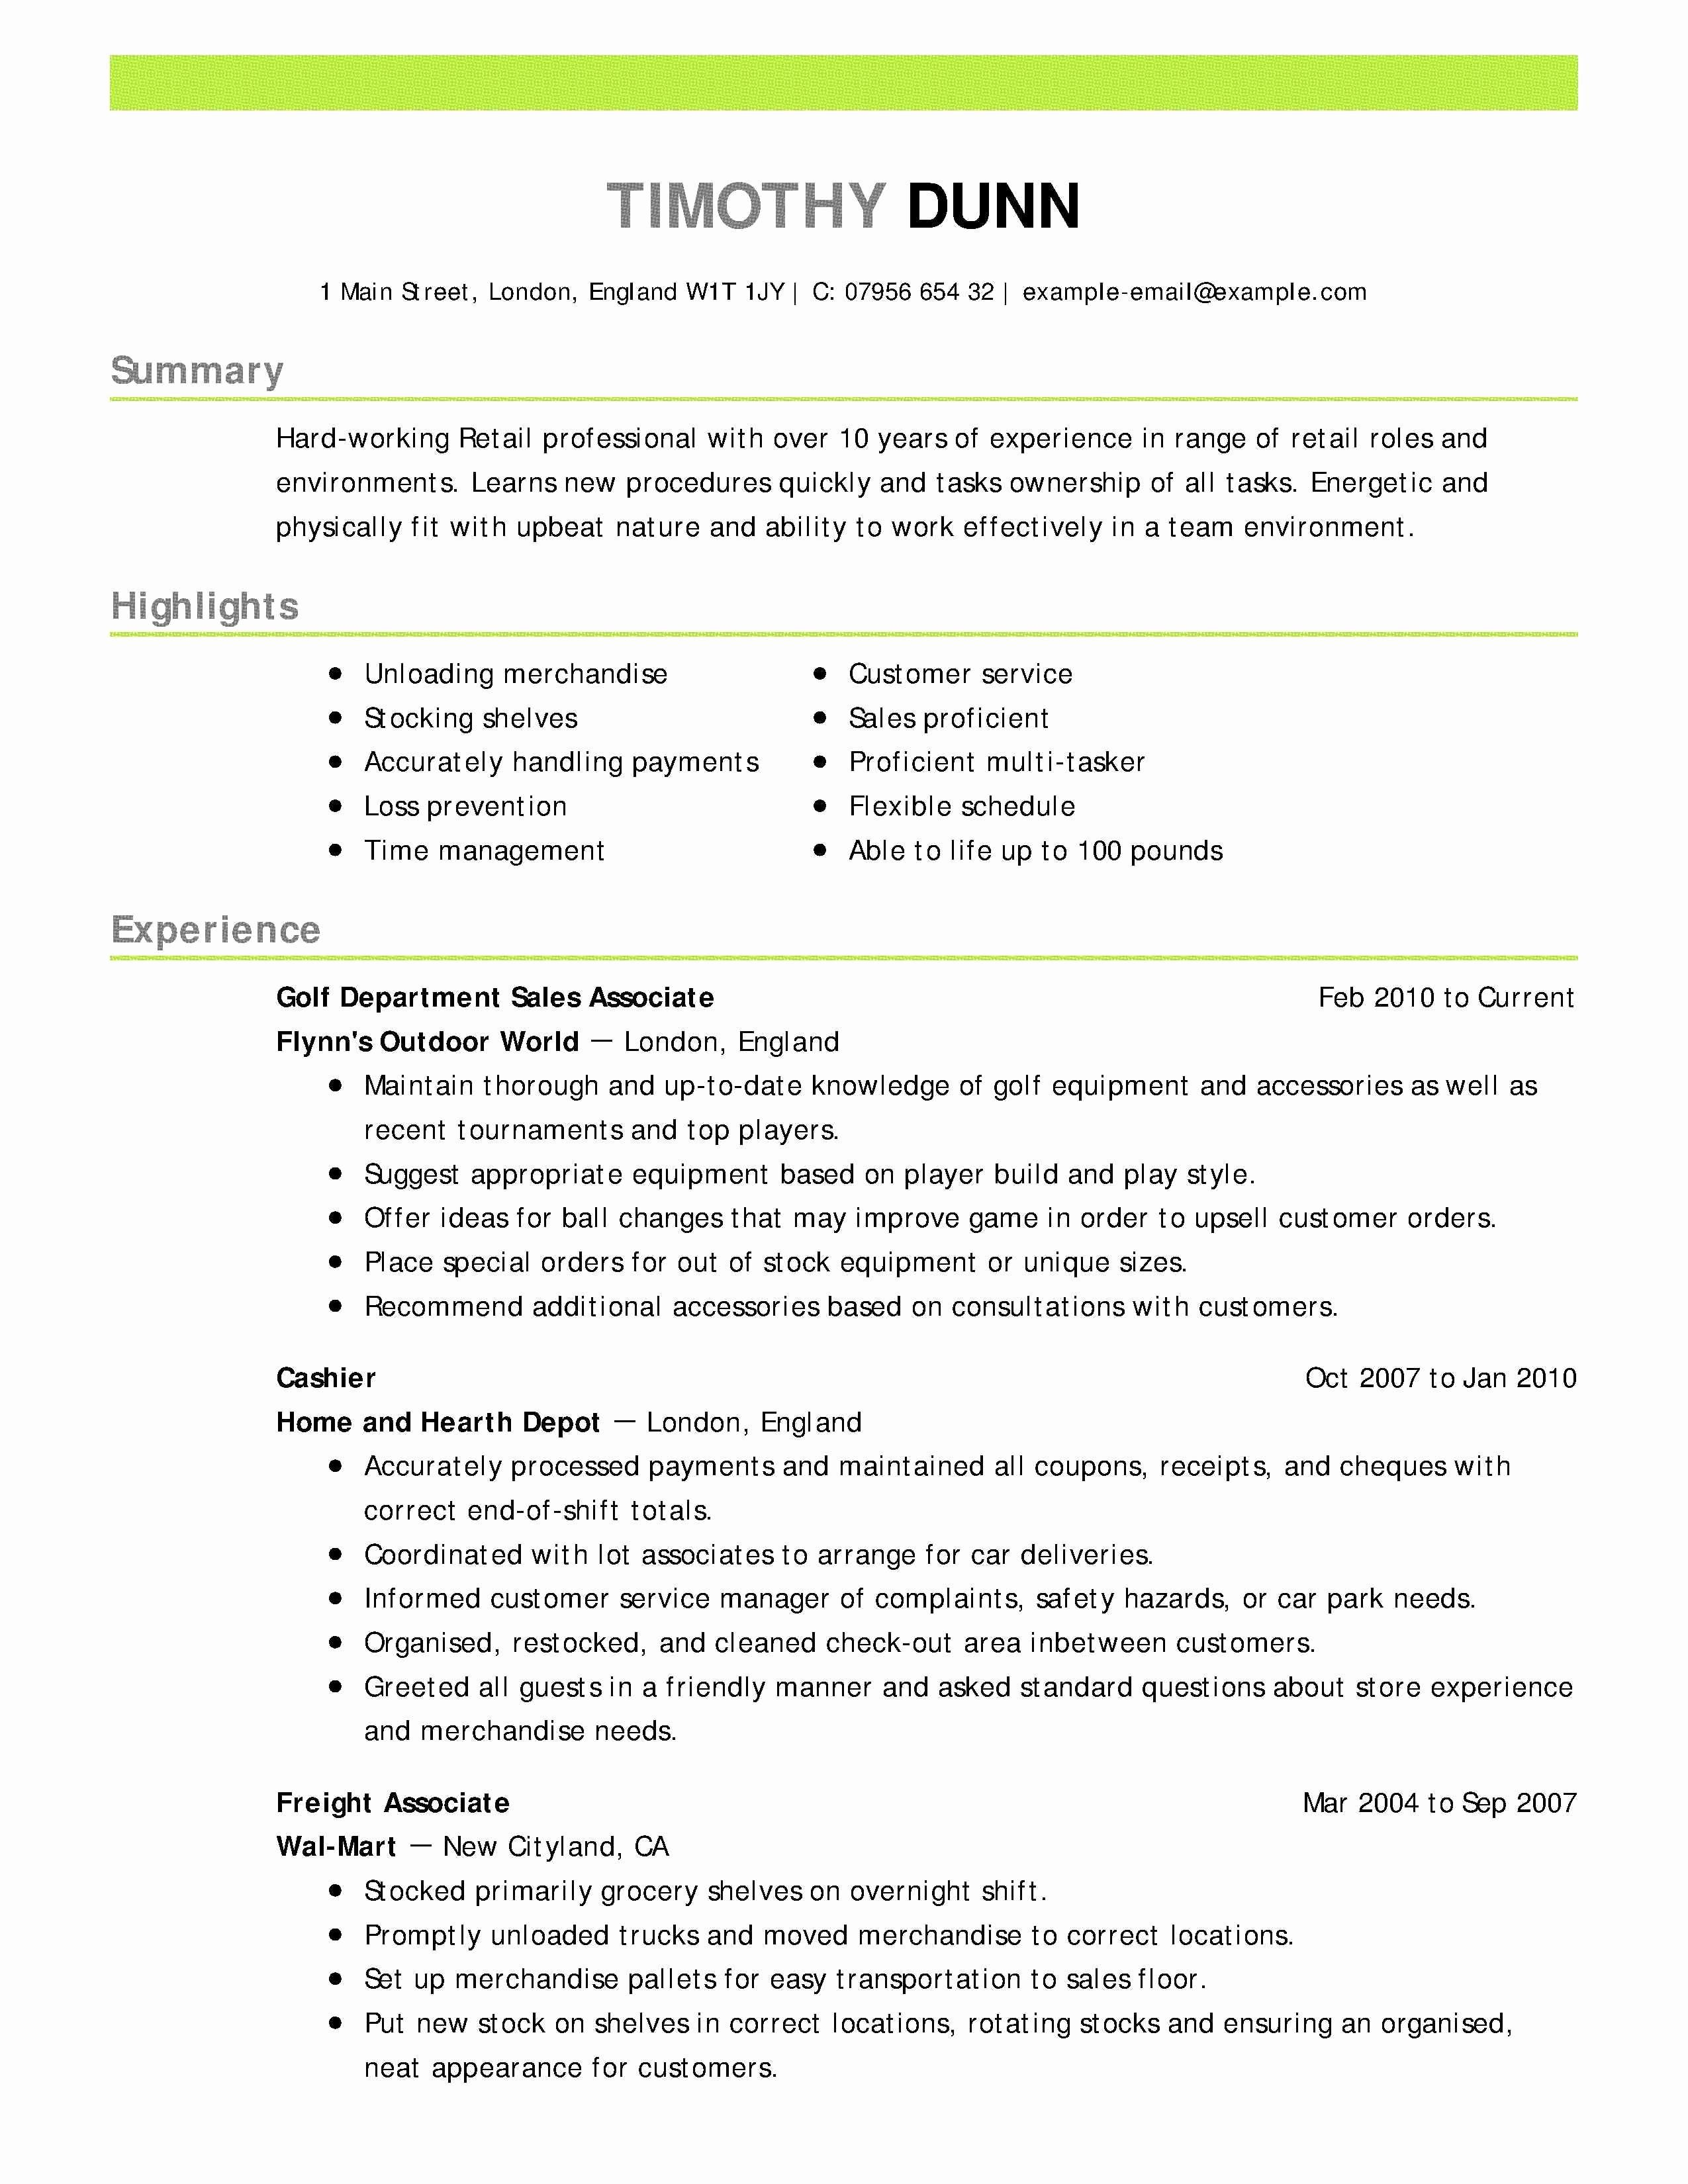 Executive Director Resume Template - Executive Director Resume Samples Beautiful Mark F Hagerty Od